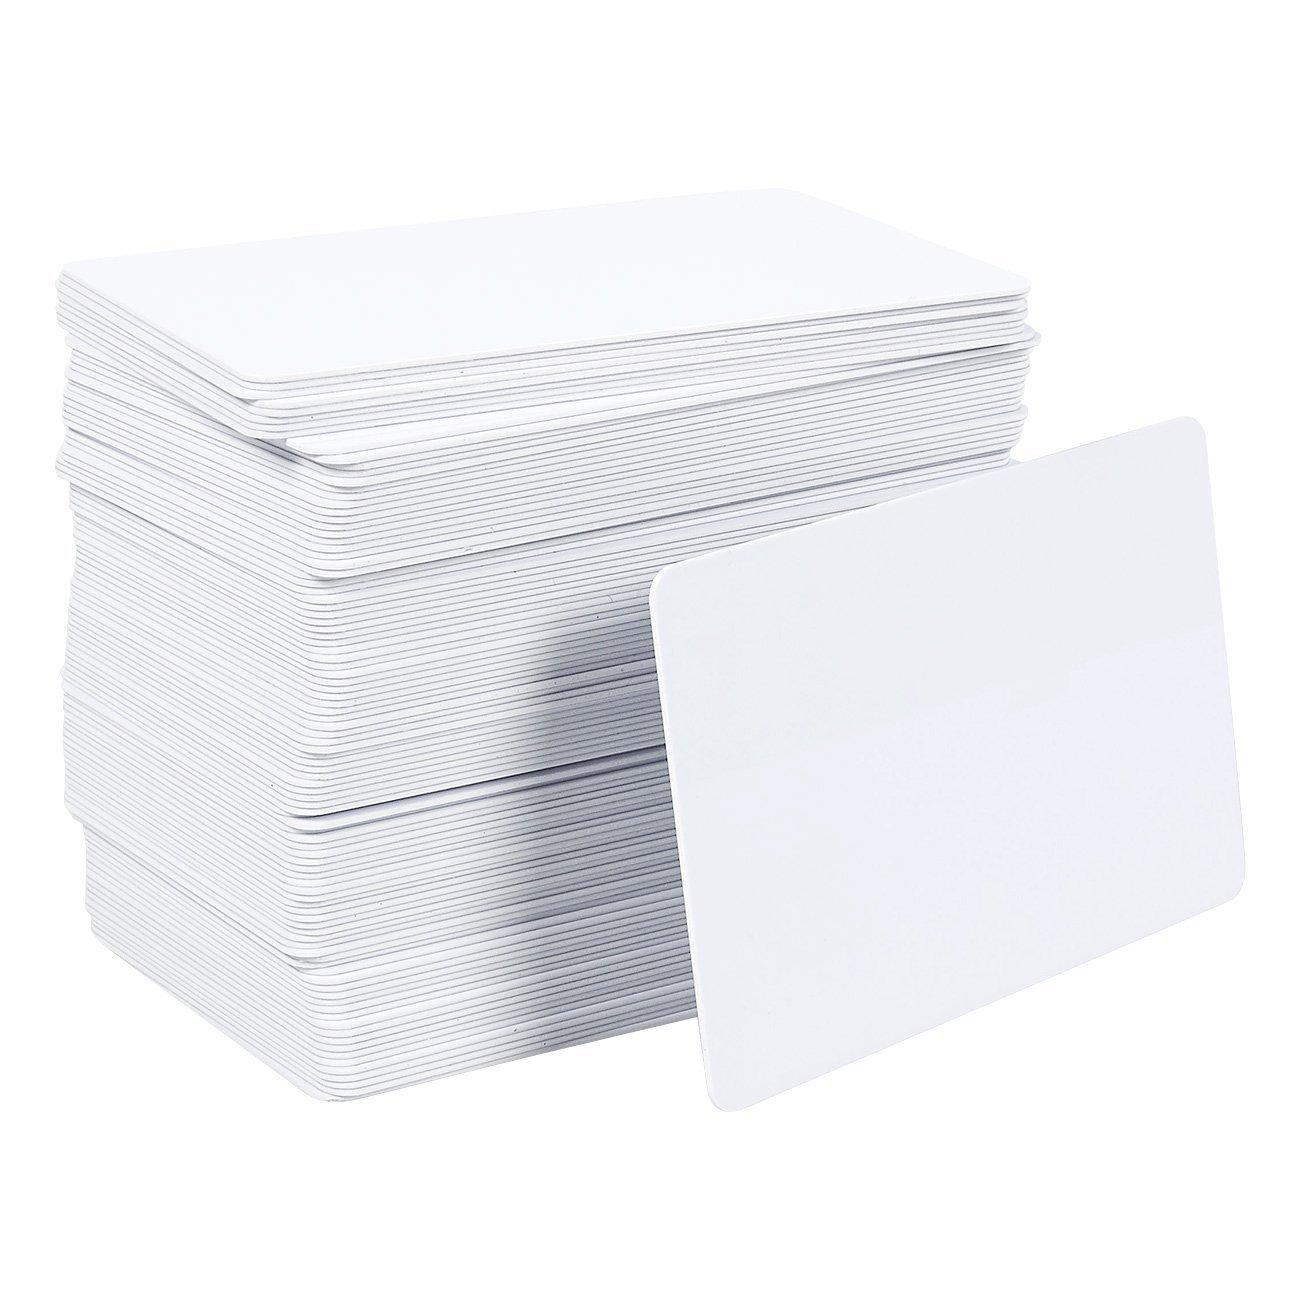 PVC Blank Cards Pack - 100 Pieces Graphic Quality White ID Plastic Cards for Photo Printer